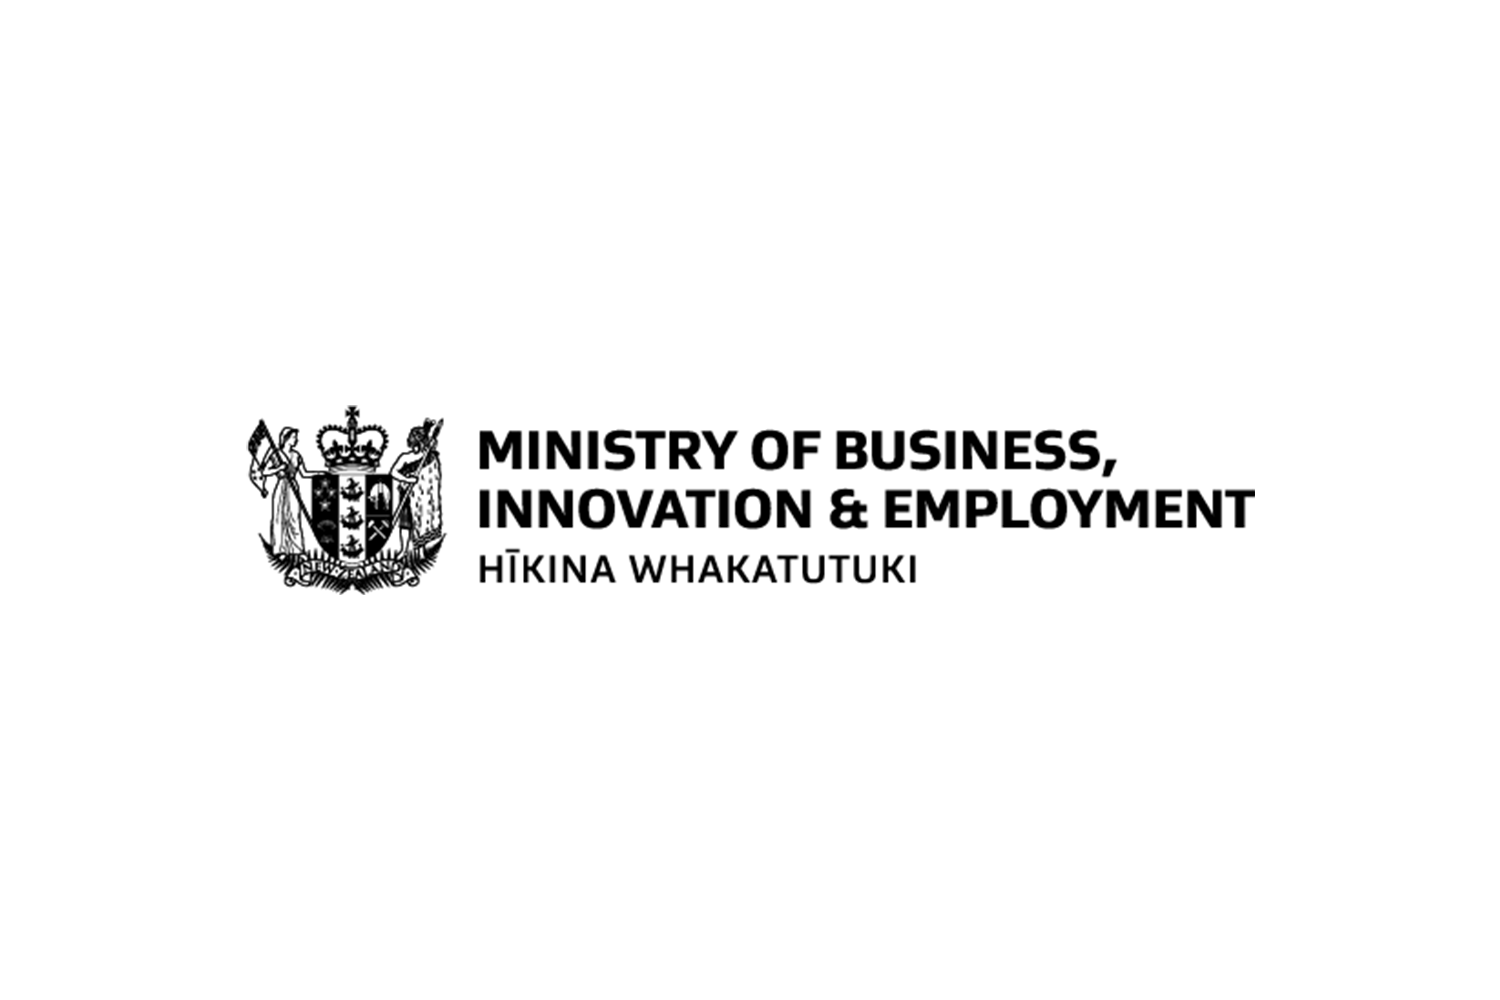 Ministry of Business